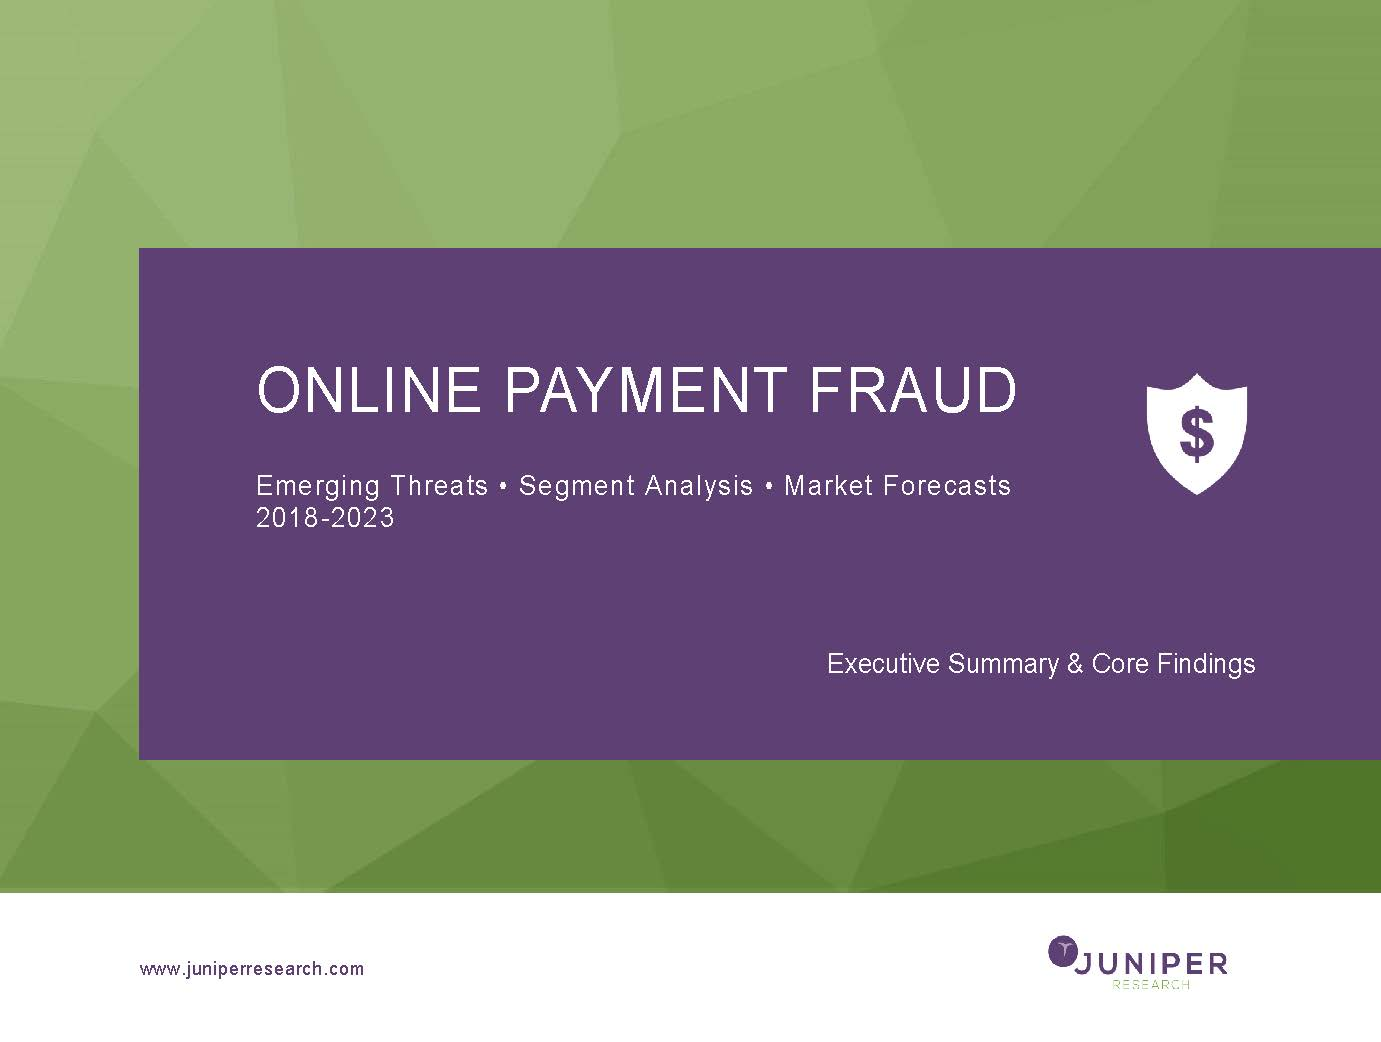 Online Payment Fraud: Executive Summary & Core Findings 2018-2023